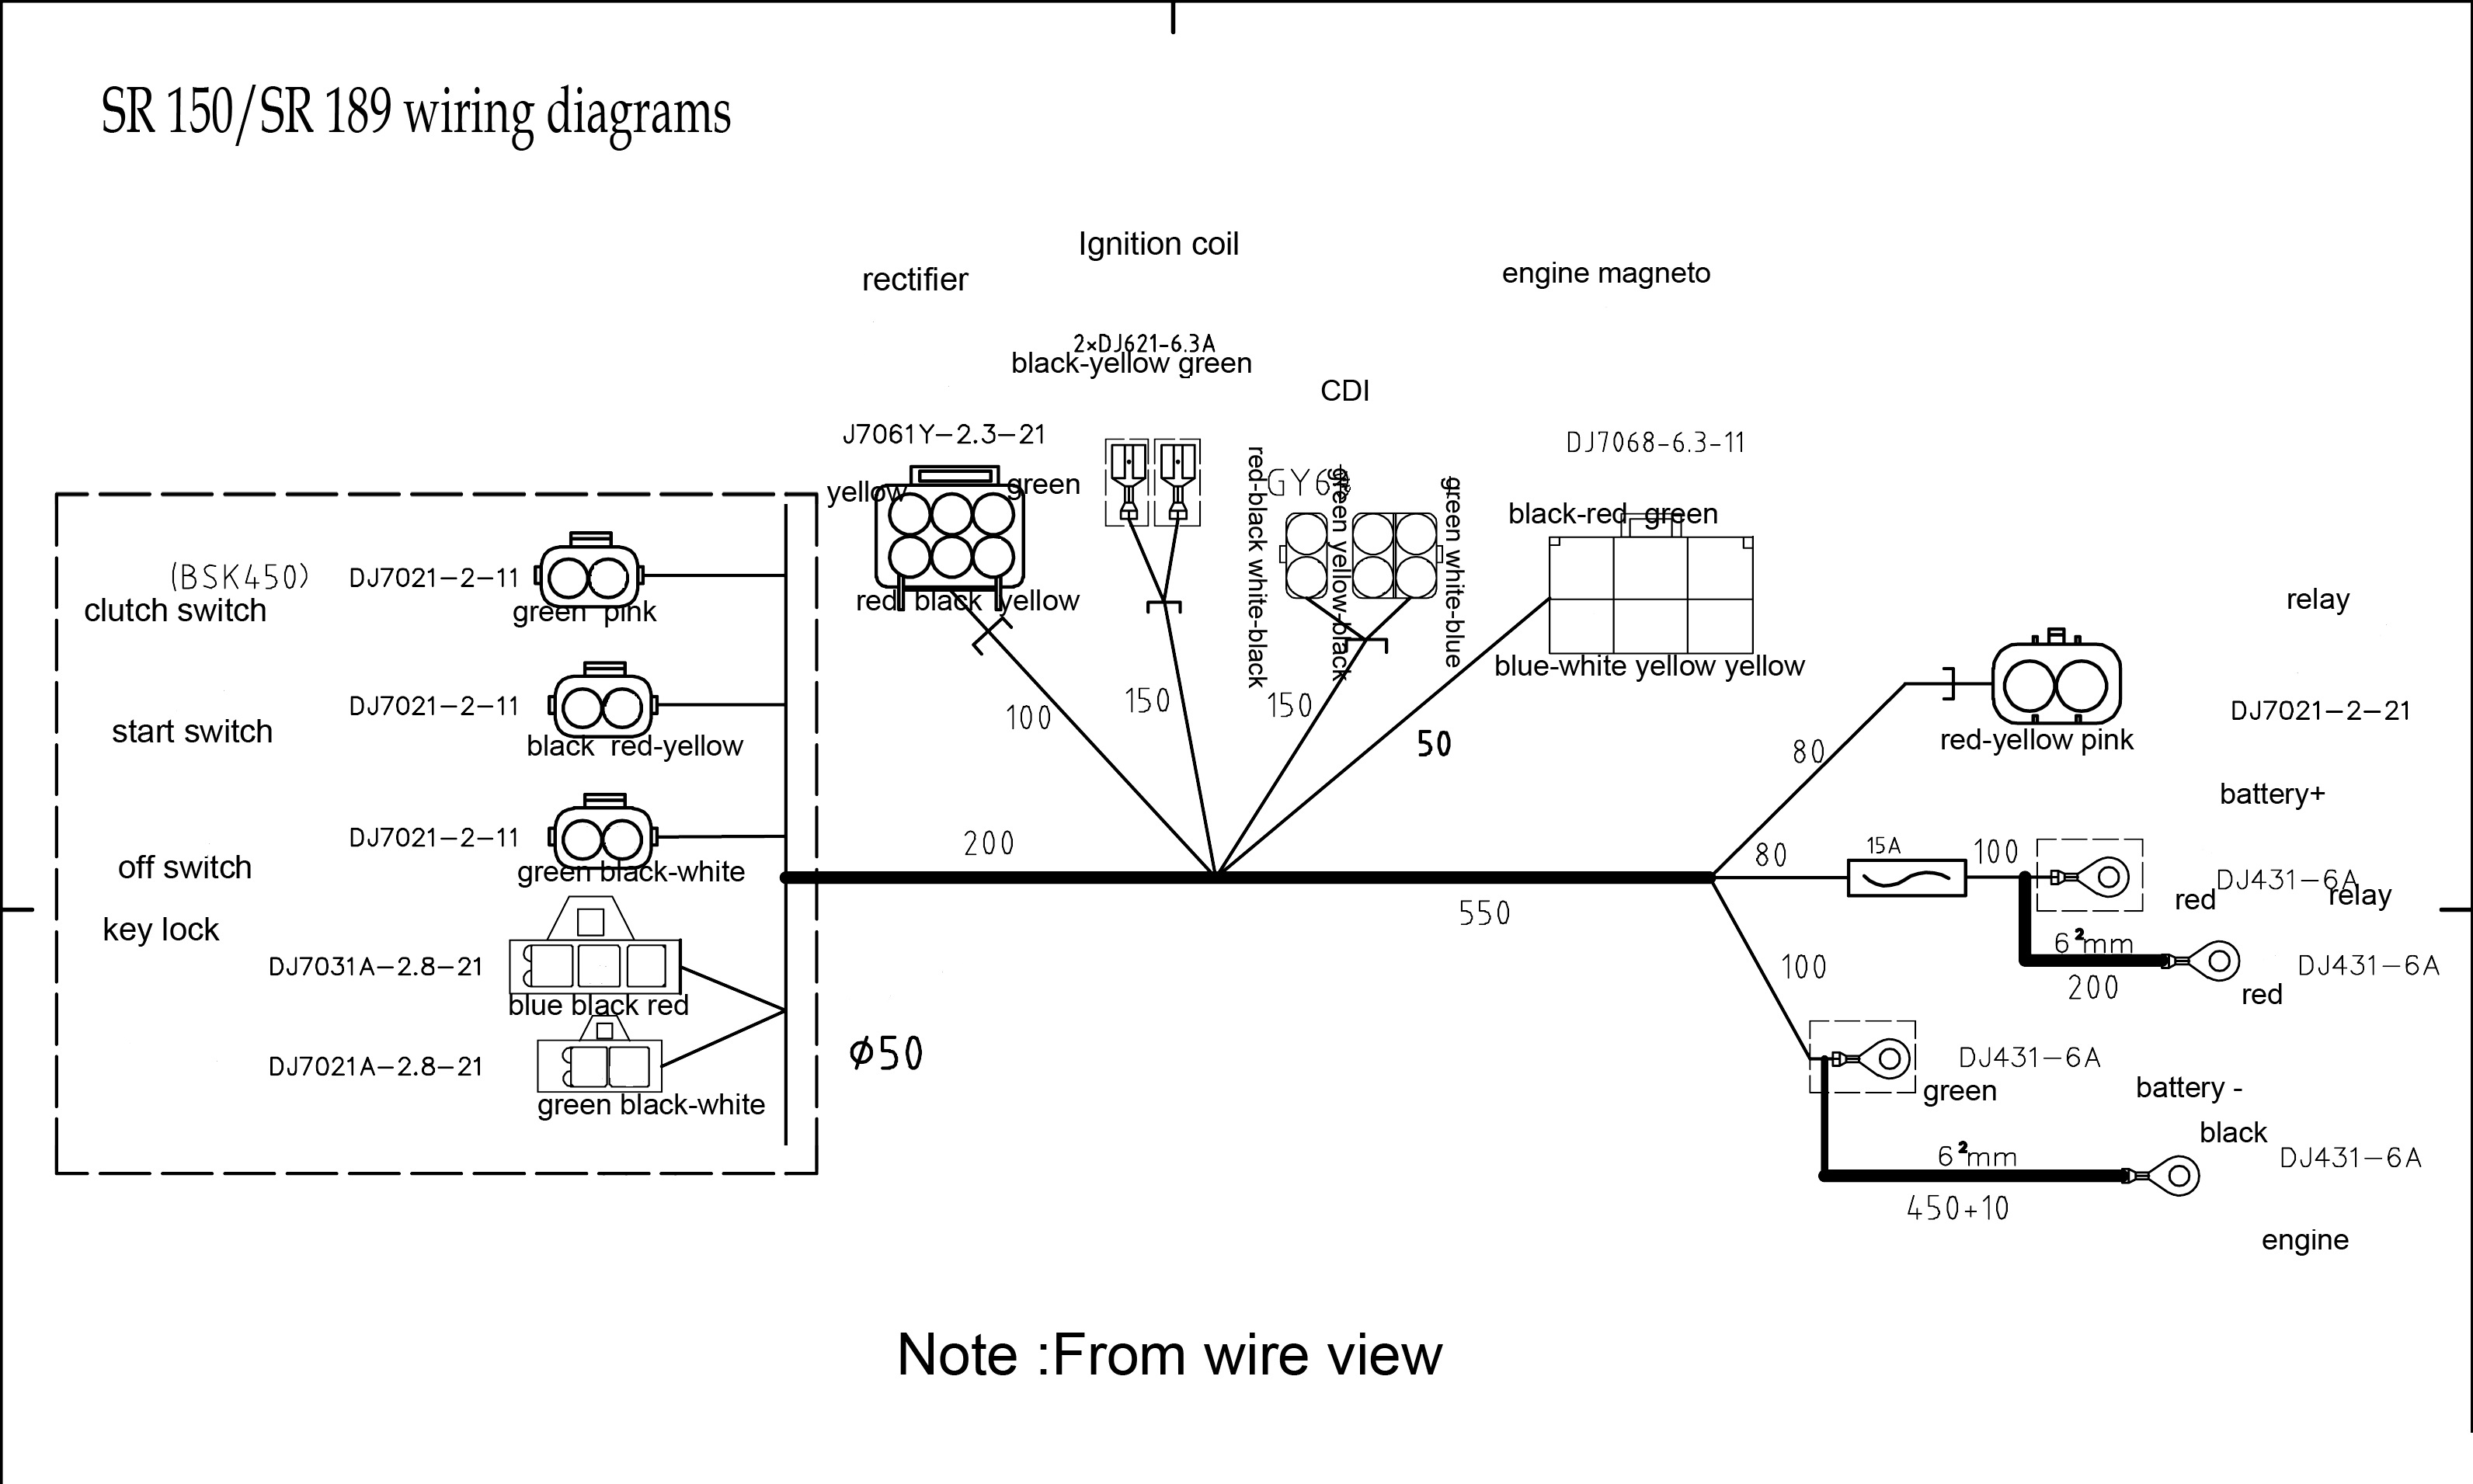 SR150_189_Wiring_Diagram crf50 wiring diagram schematic circuit diagram \u2022 wiring diagrams  at nearapp.co